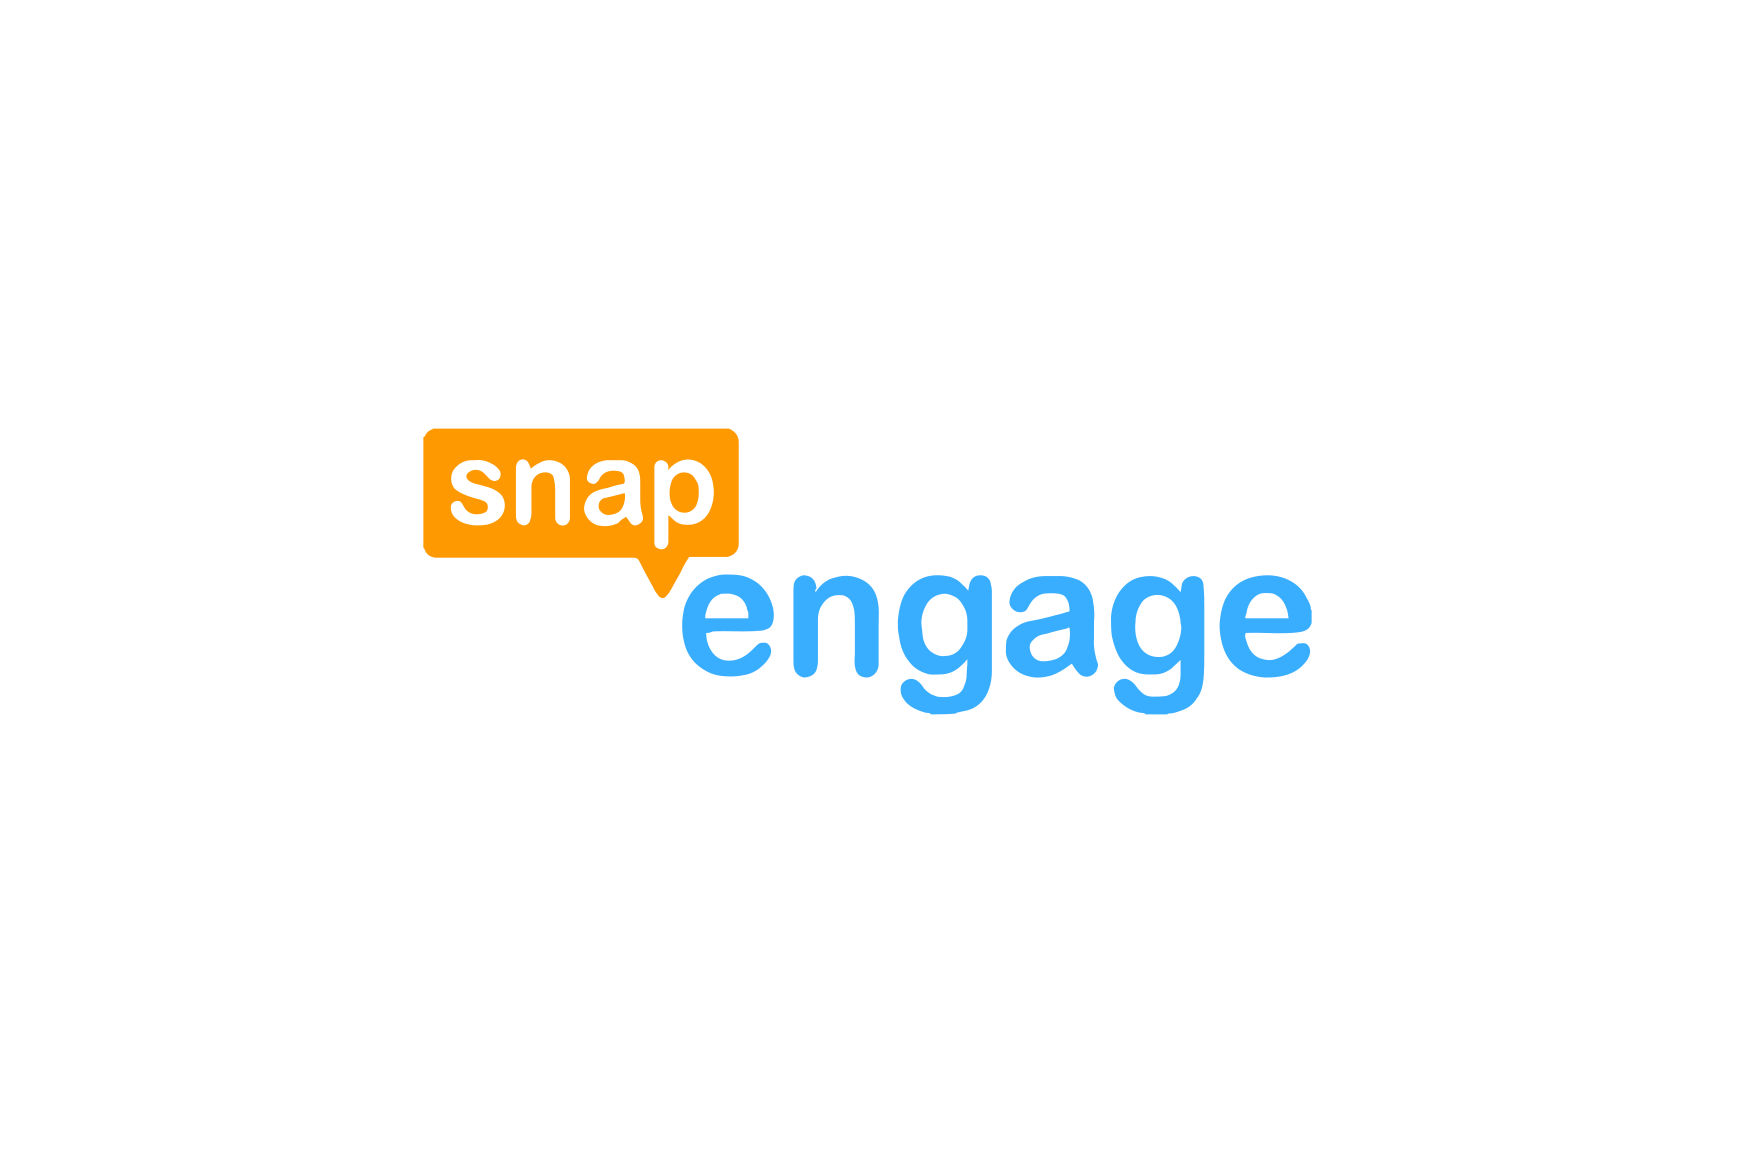 SnapEngage - Live Chat Software : SaaSworthy.com